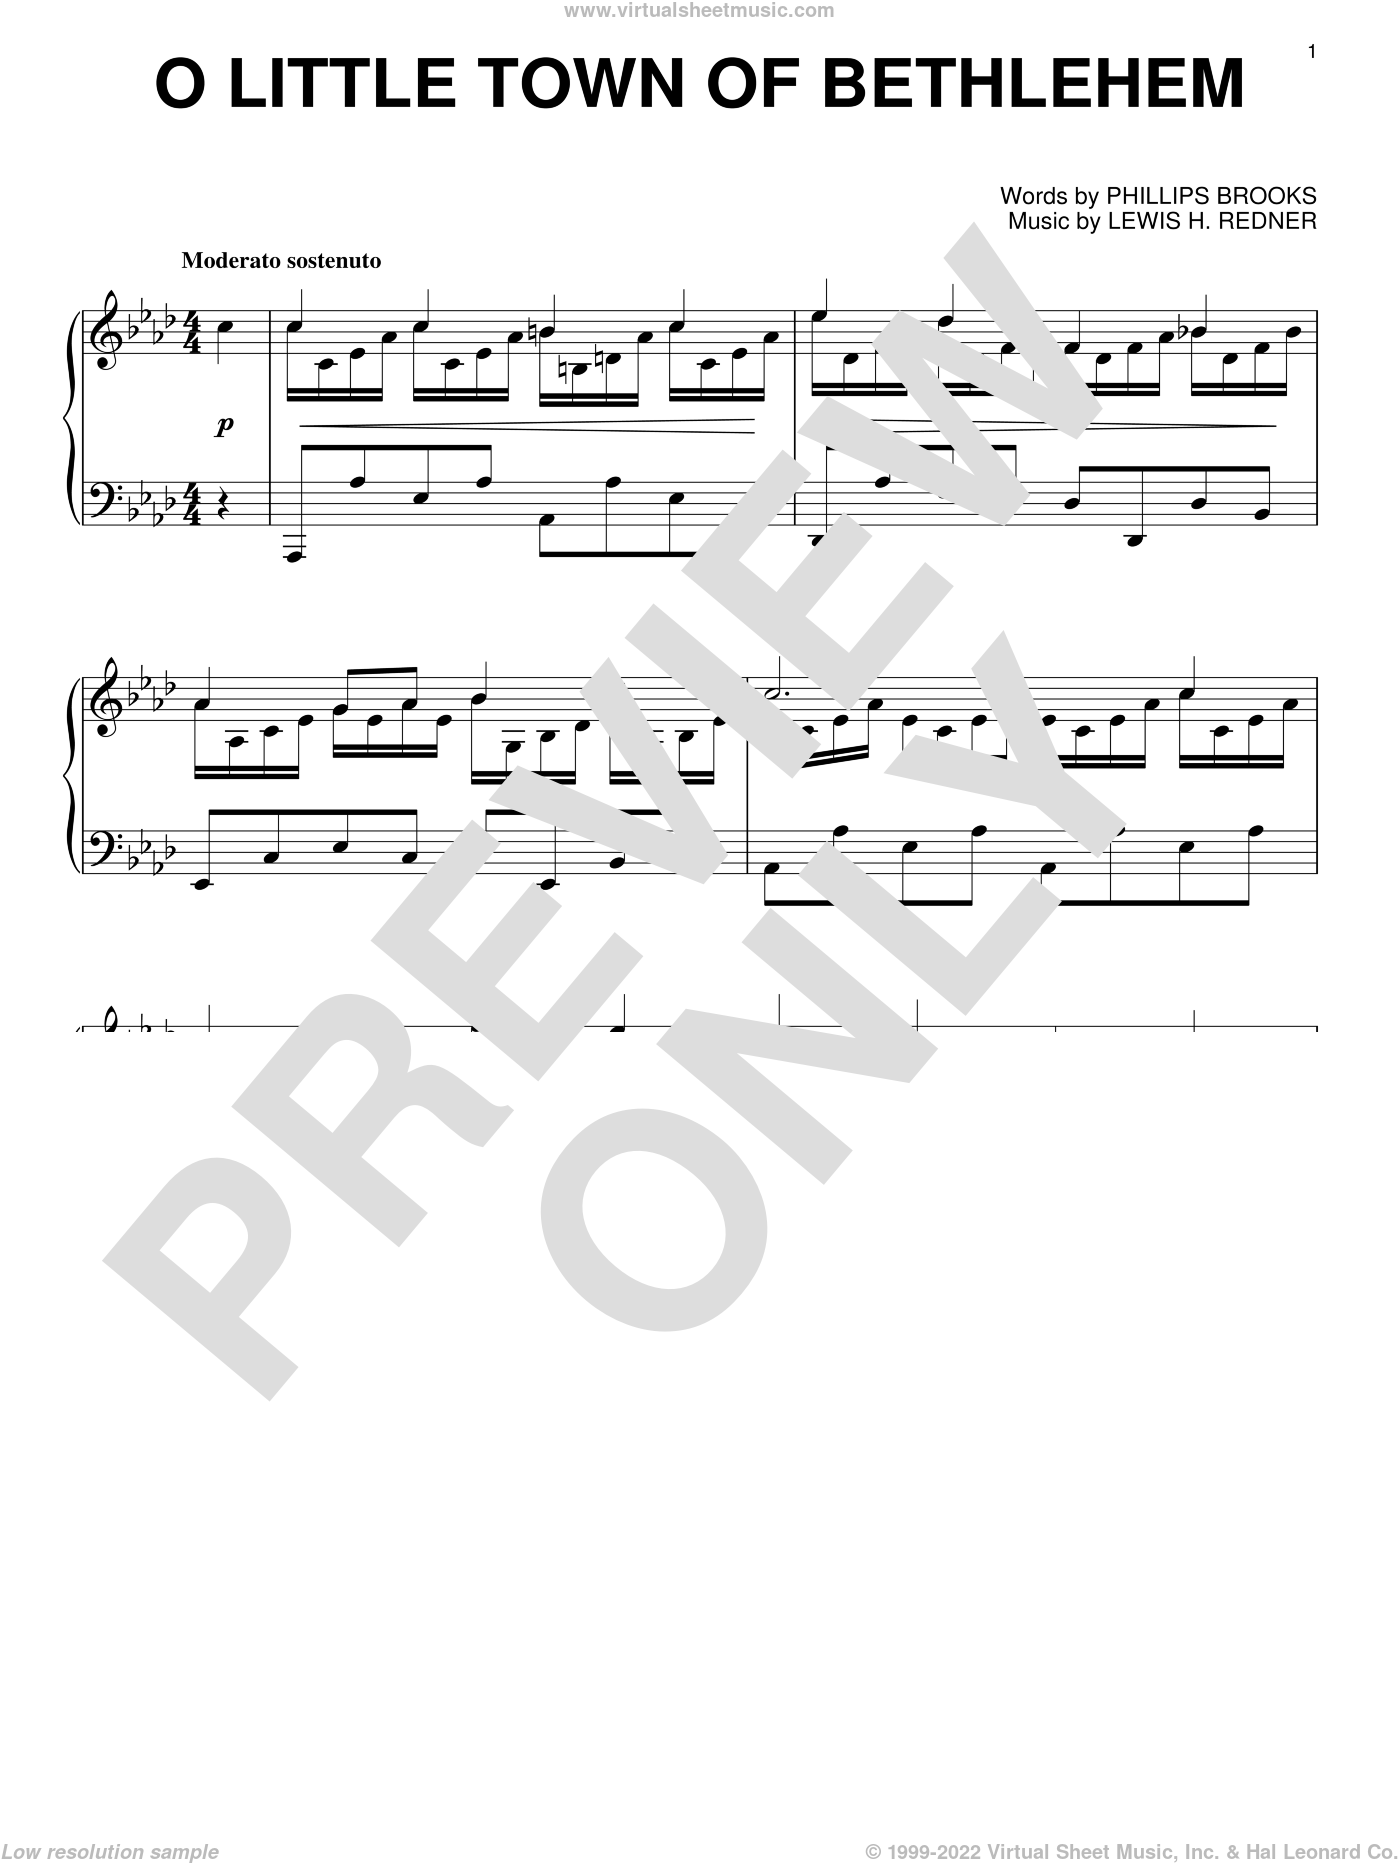 O Little Town Of Bethlehem sheet music for piano solo by Phillips Brooks and Lewis Redner, intermediate skill level